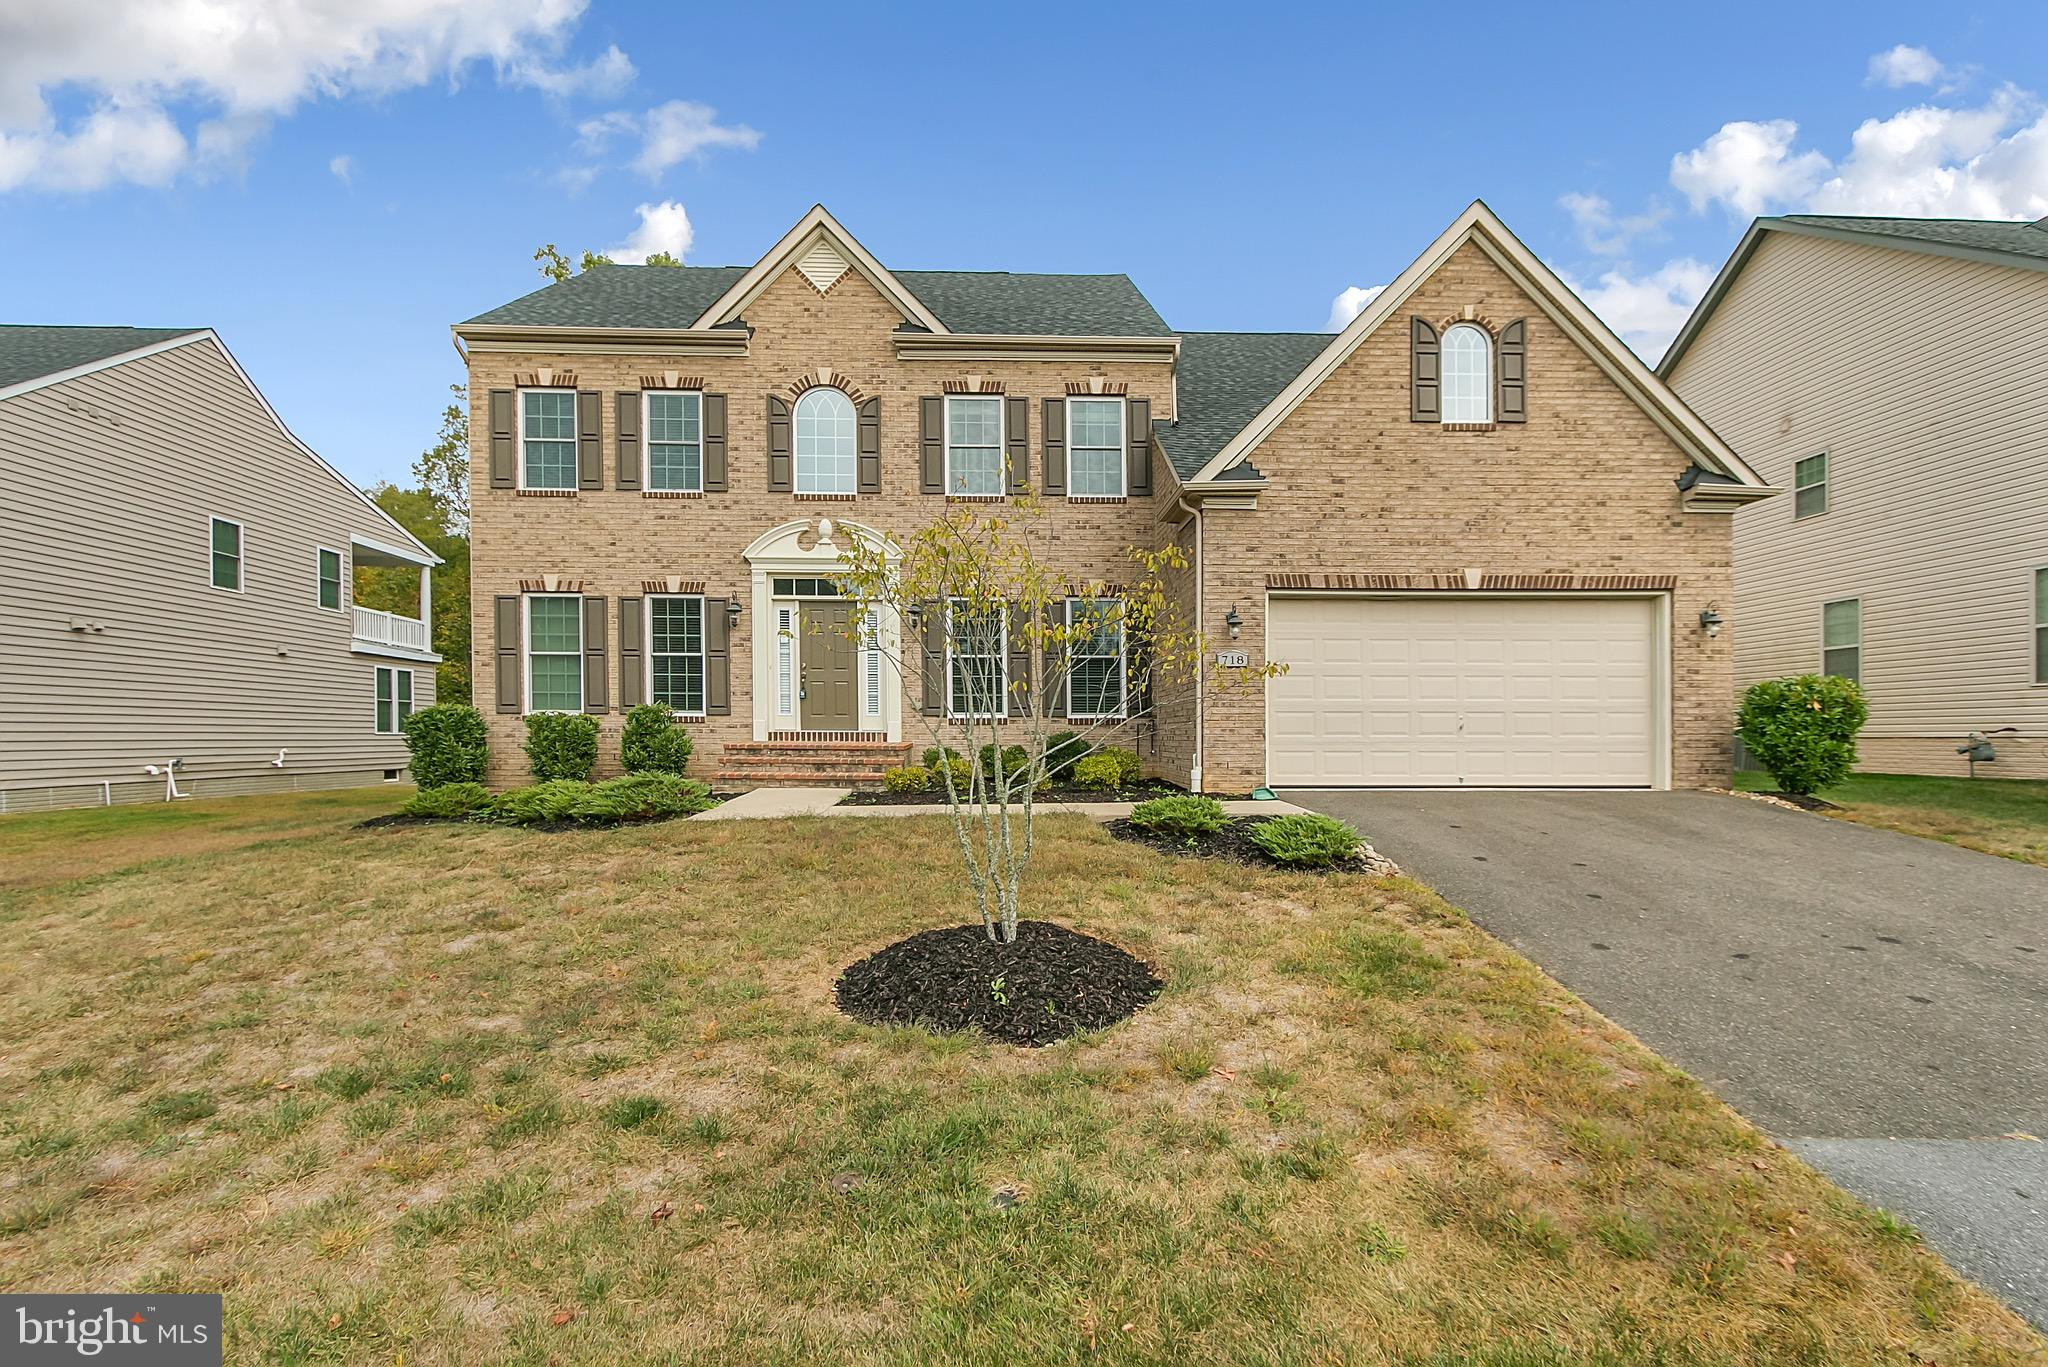 718 ARDONIA TERRACE, UPPER MARLBORO, MD 20774